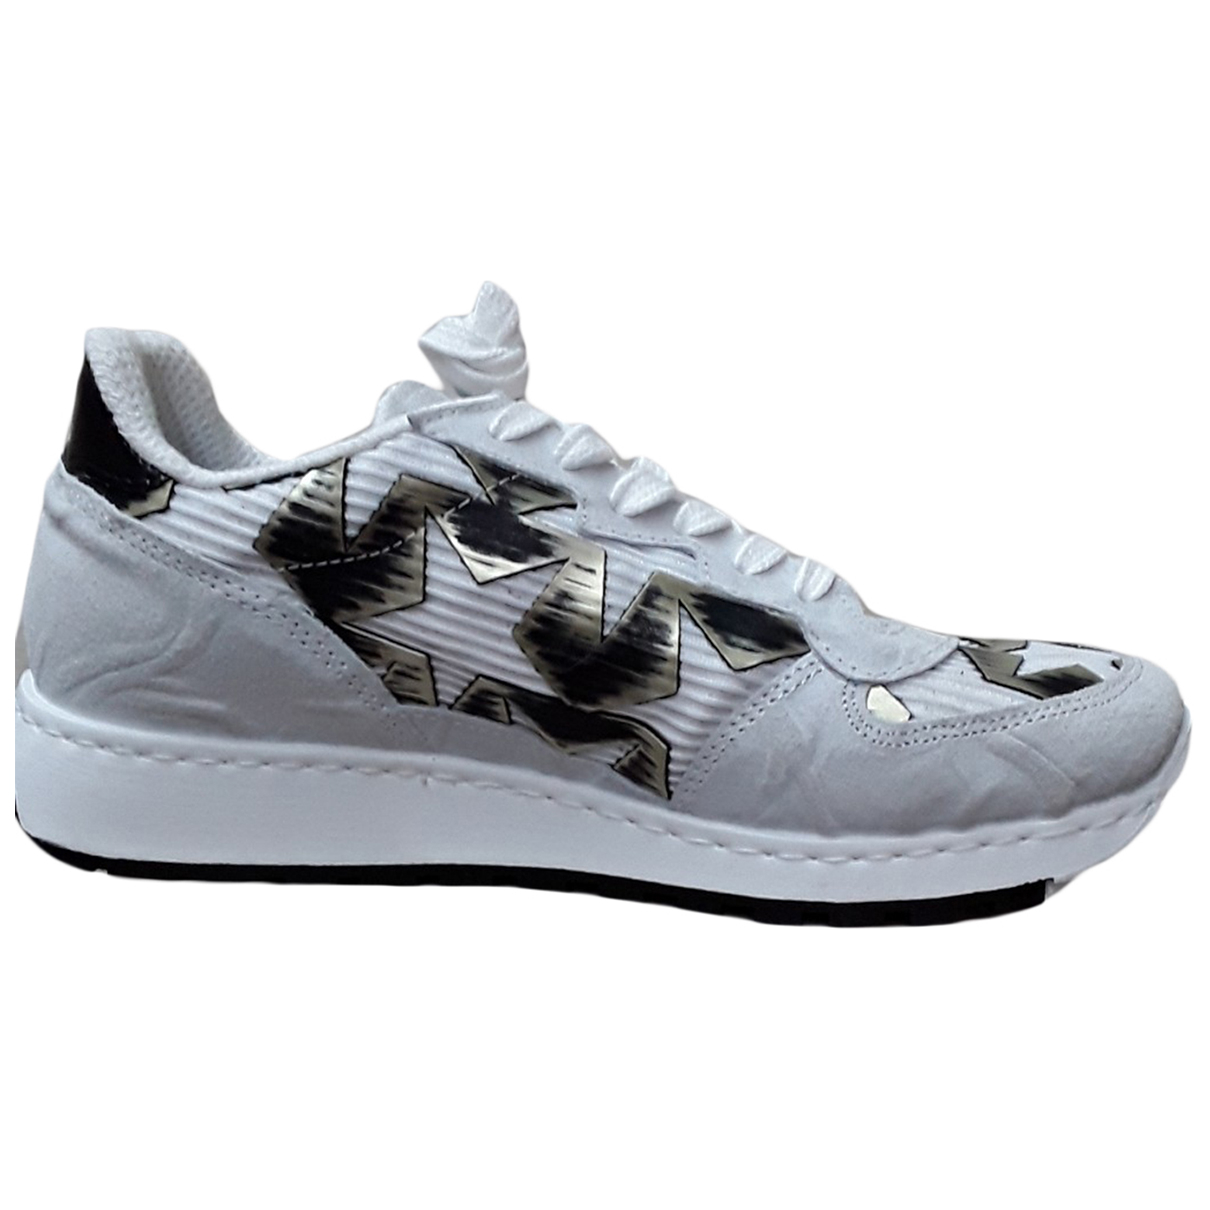 Autre Marque N Leather Trainers for Women 38 EU